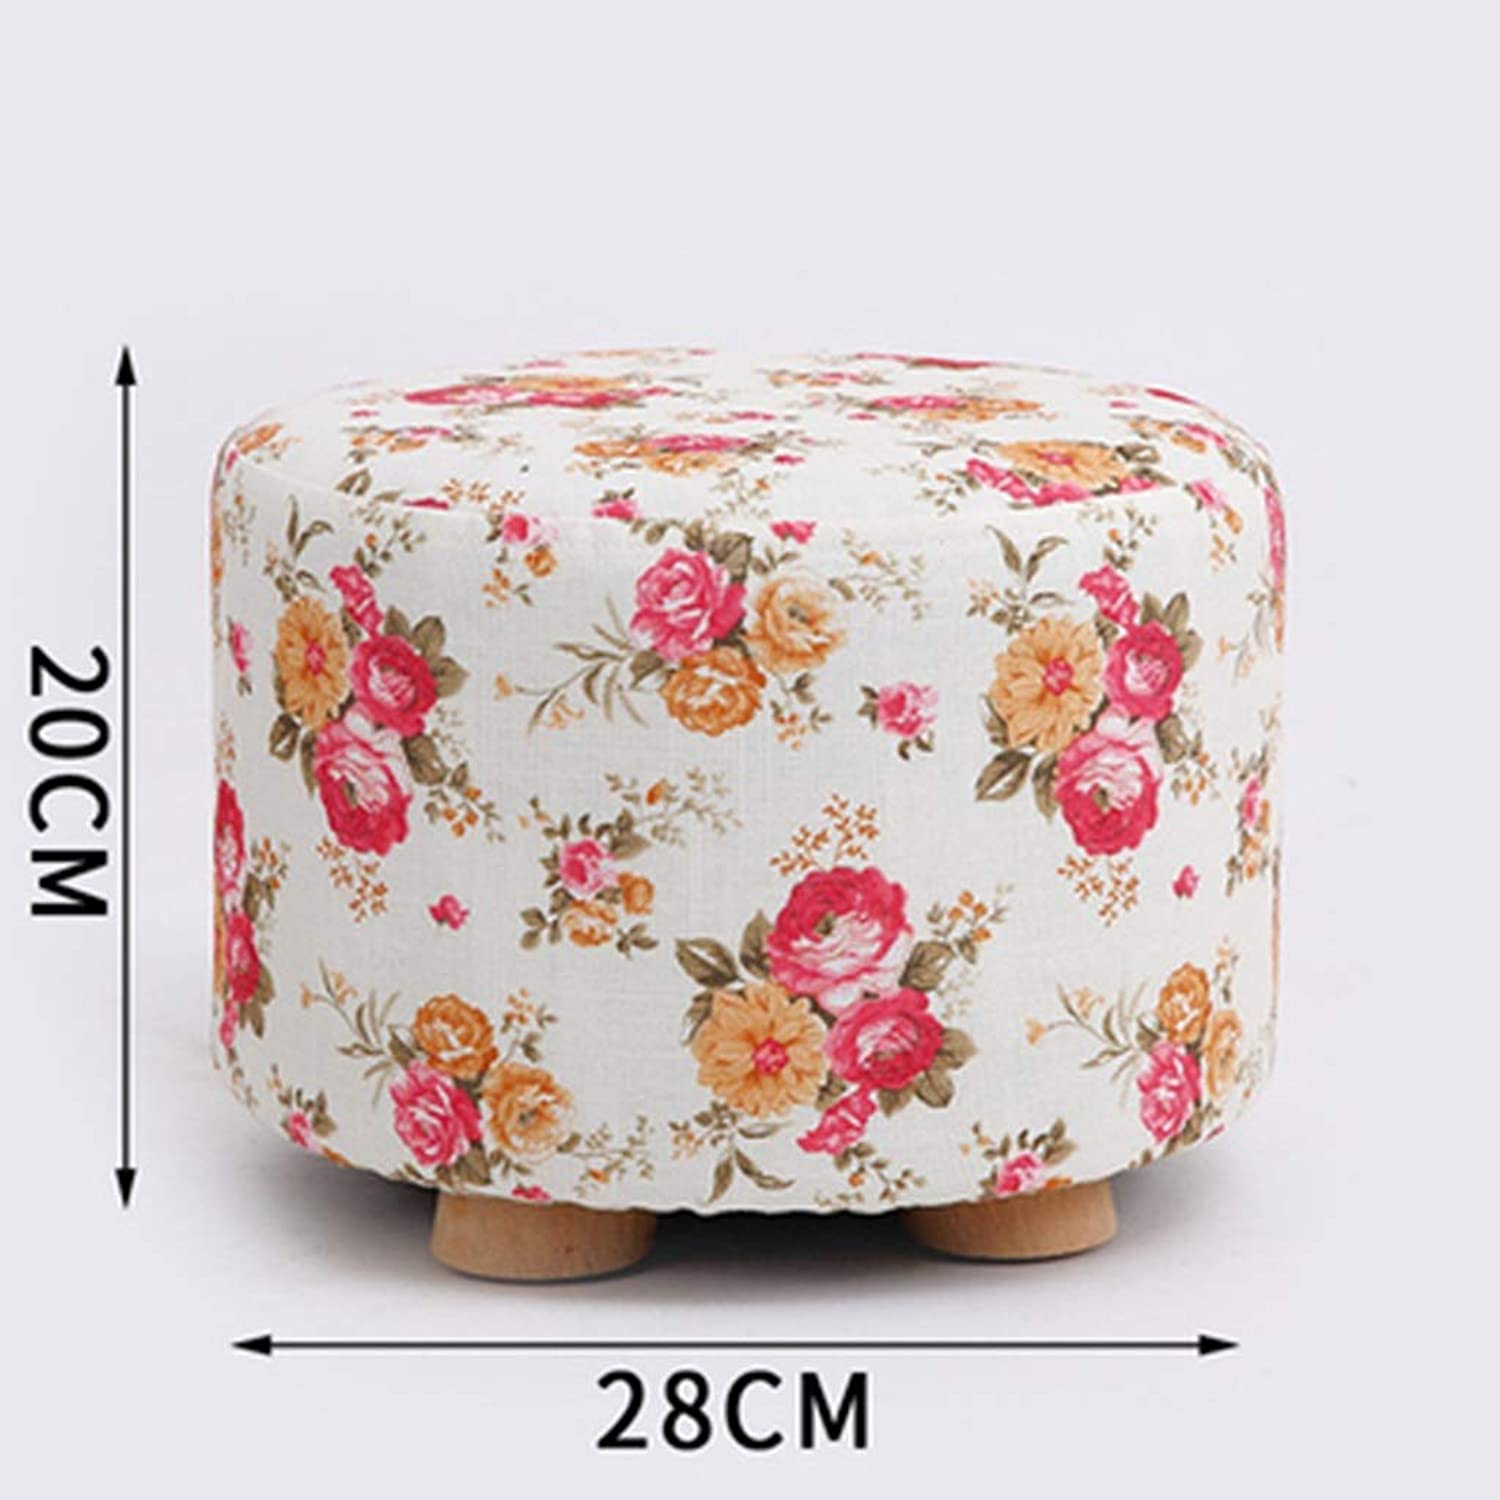 DQMSB Solid Wood Stool Home Change shoes Stool Stool Fashion Creative Living Room Small Bench Sofa Stool Bedroom Fabric Stool (color   A)